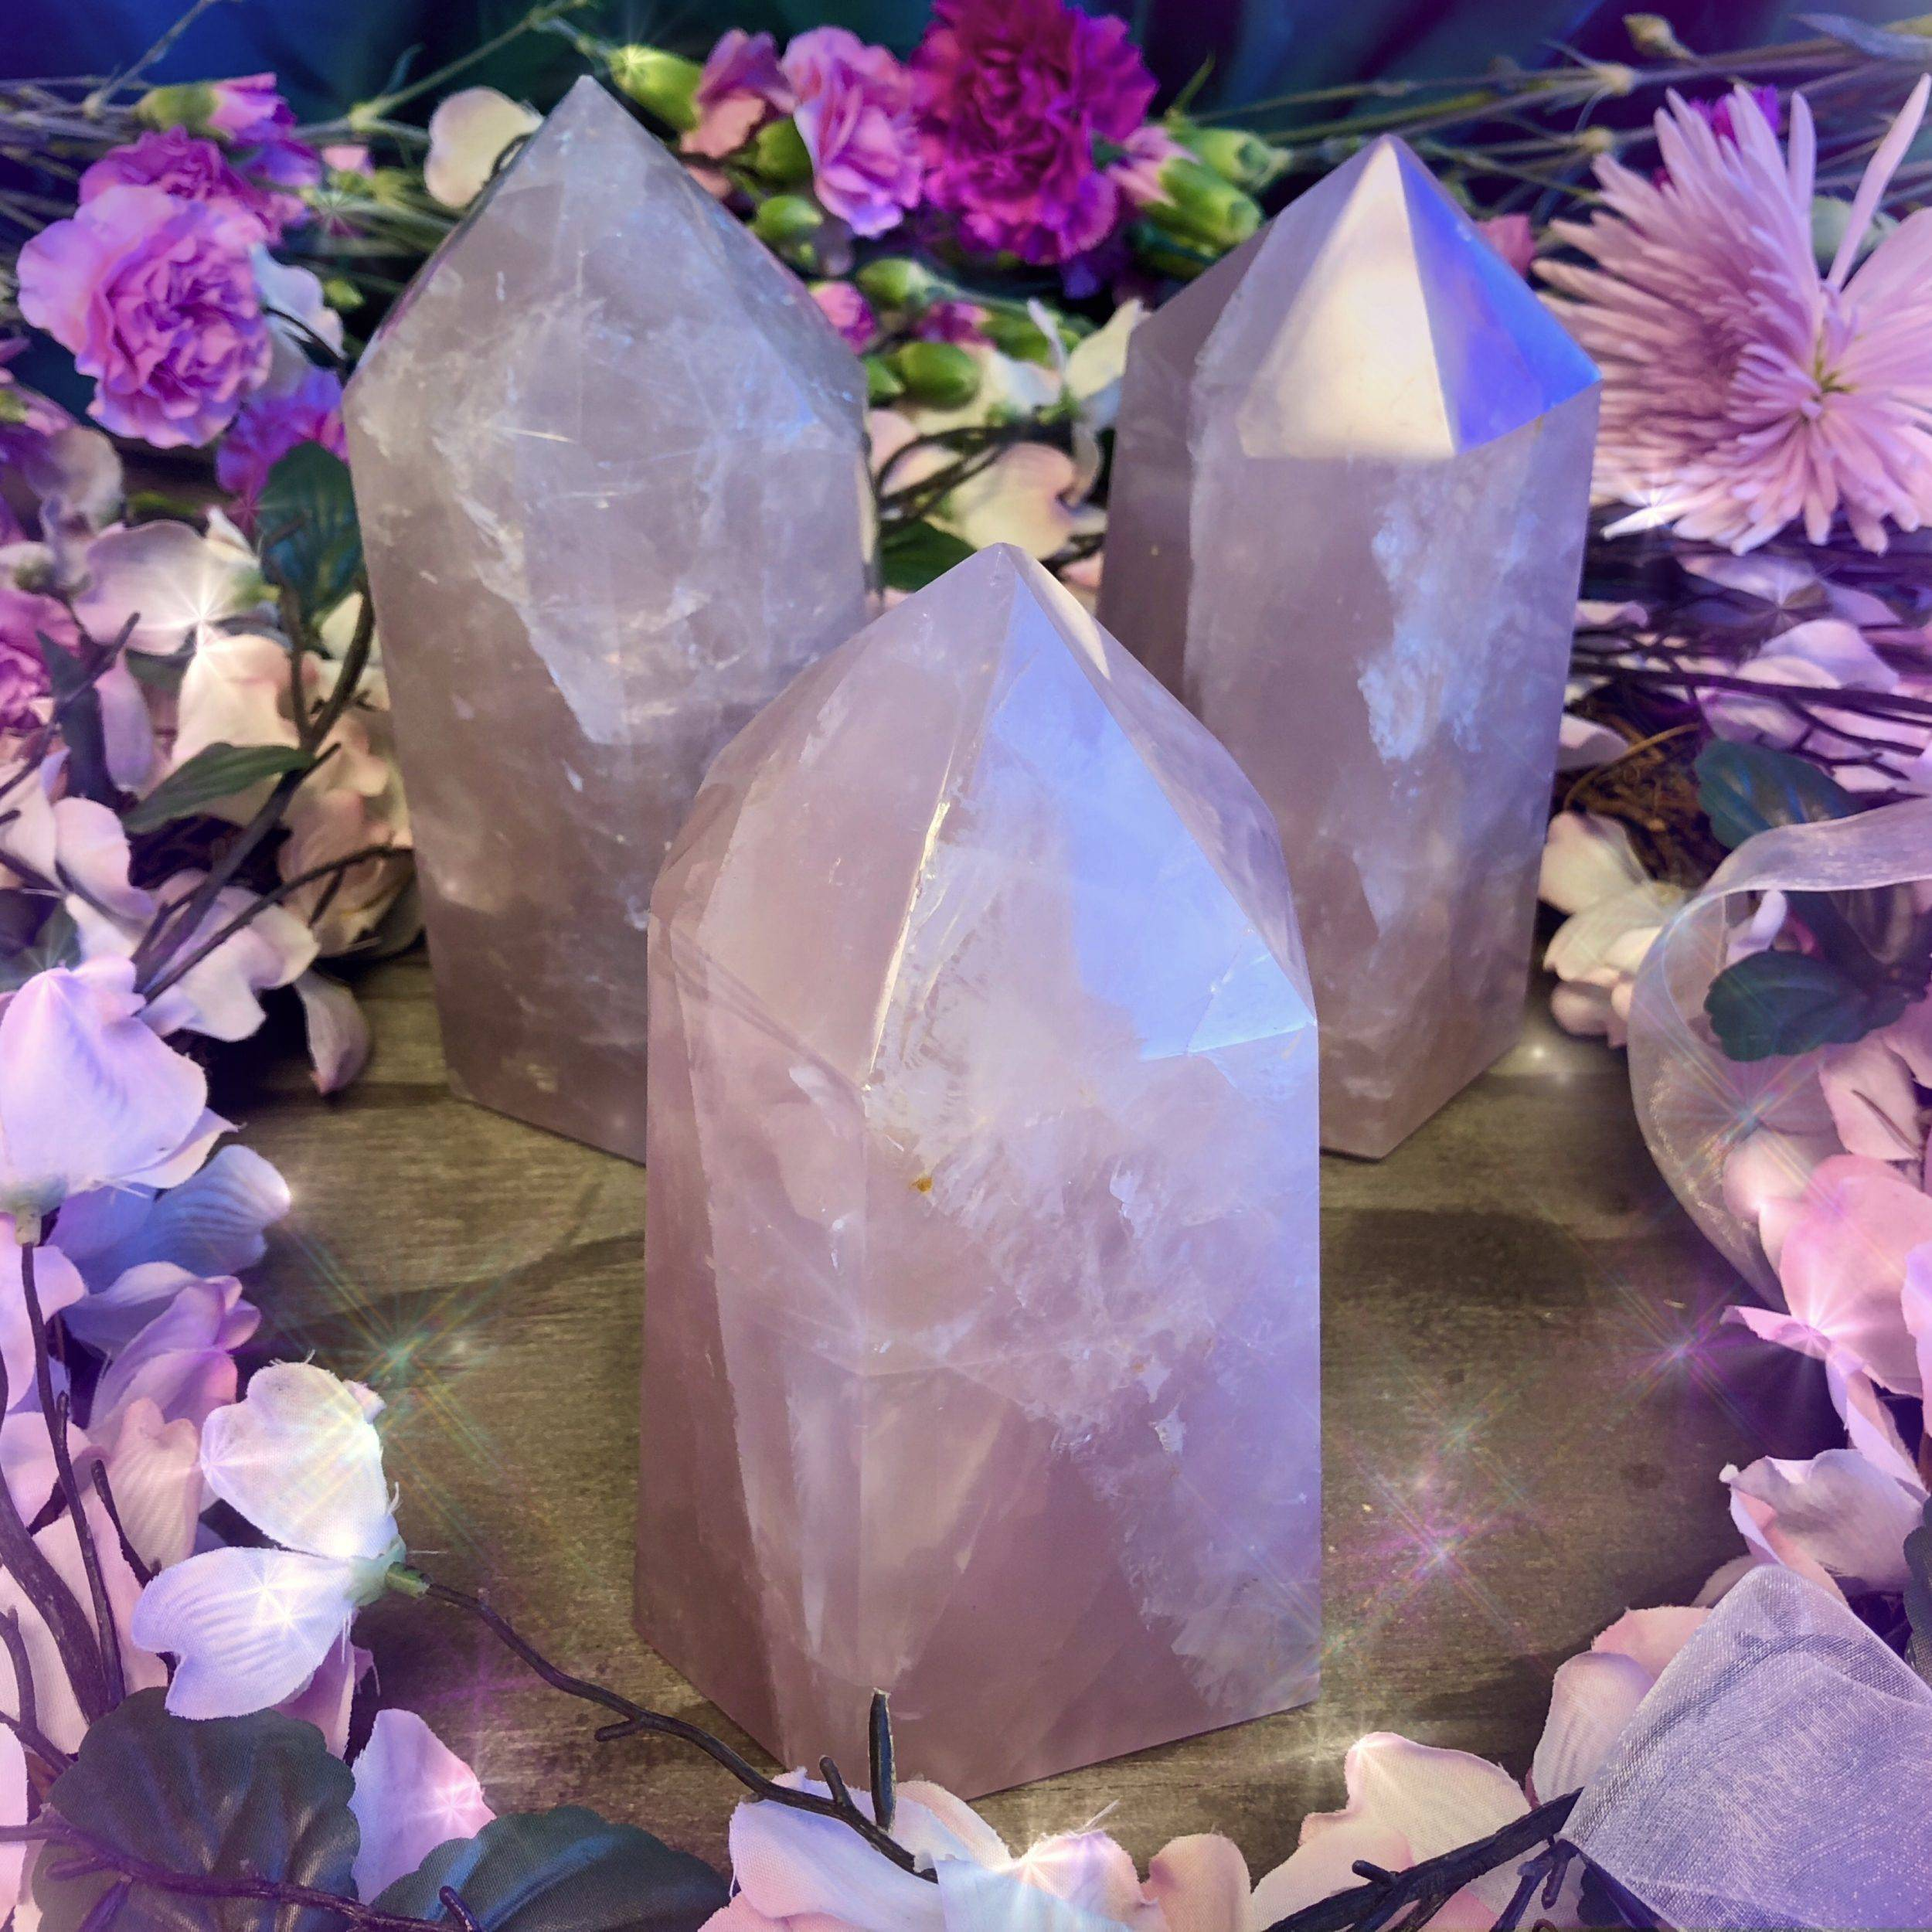 Huge_Rose_Quartz_Generators_1of4_9_26.